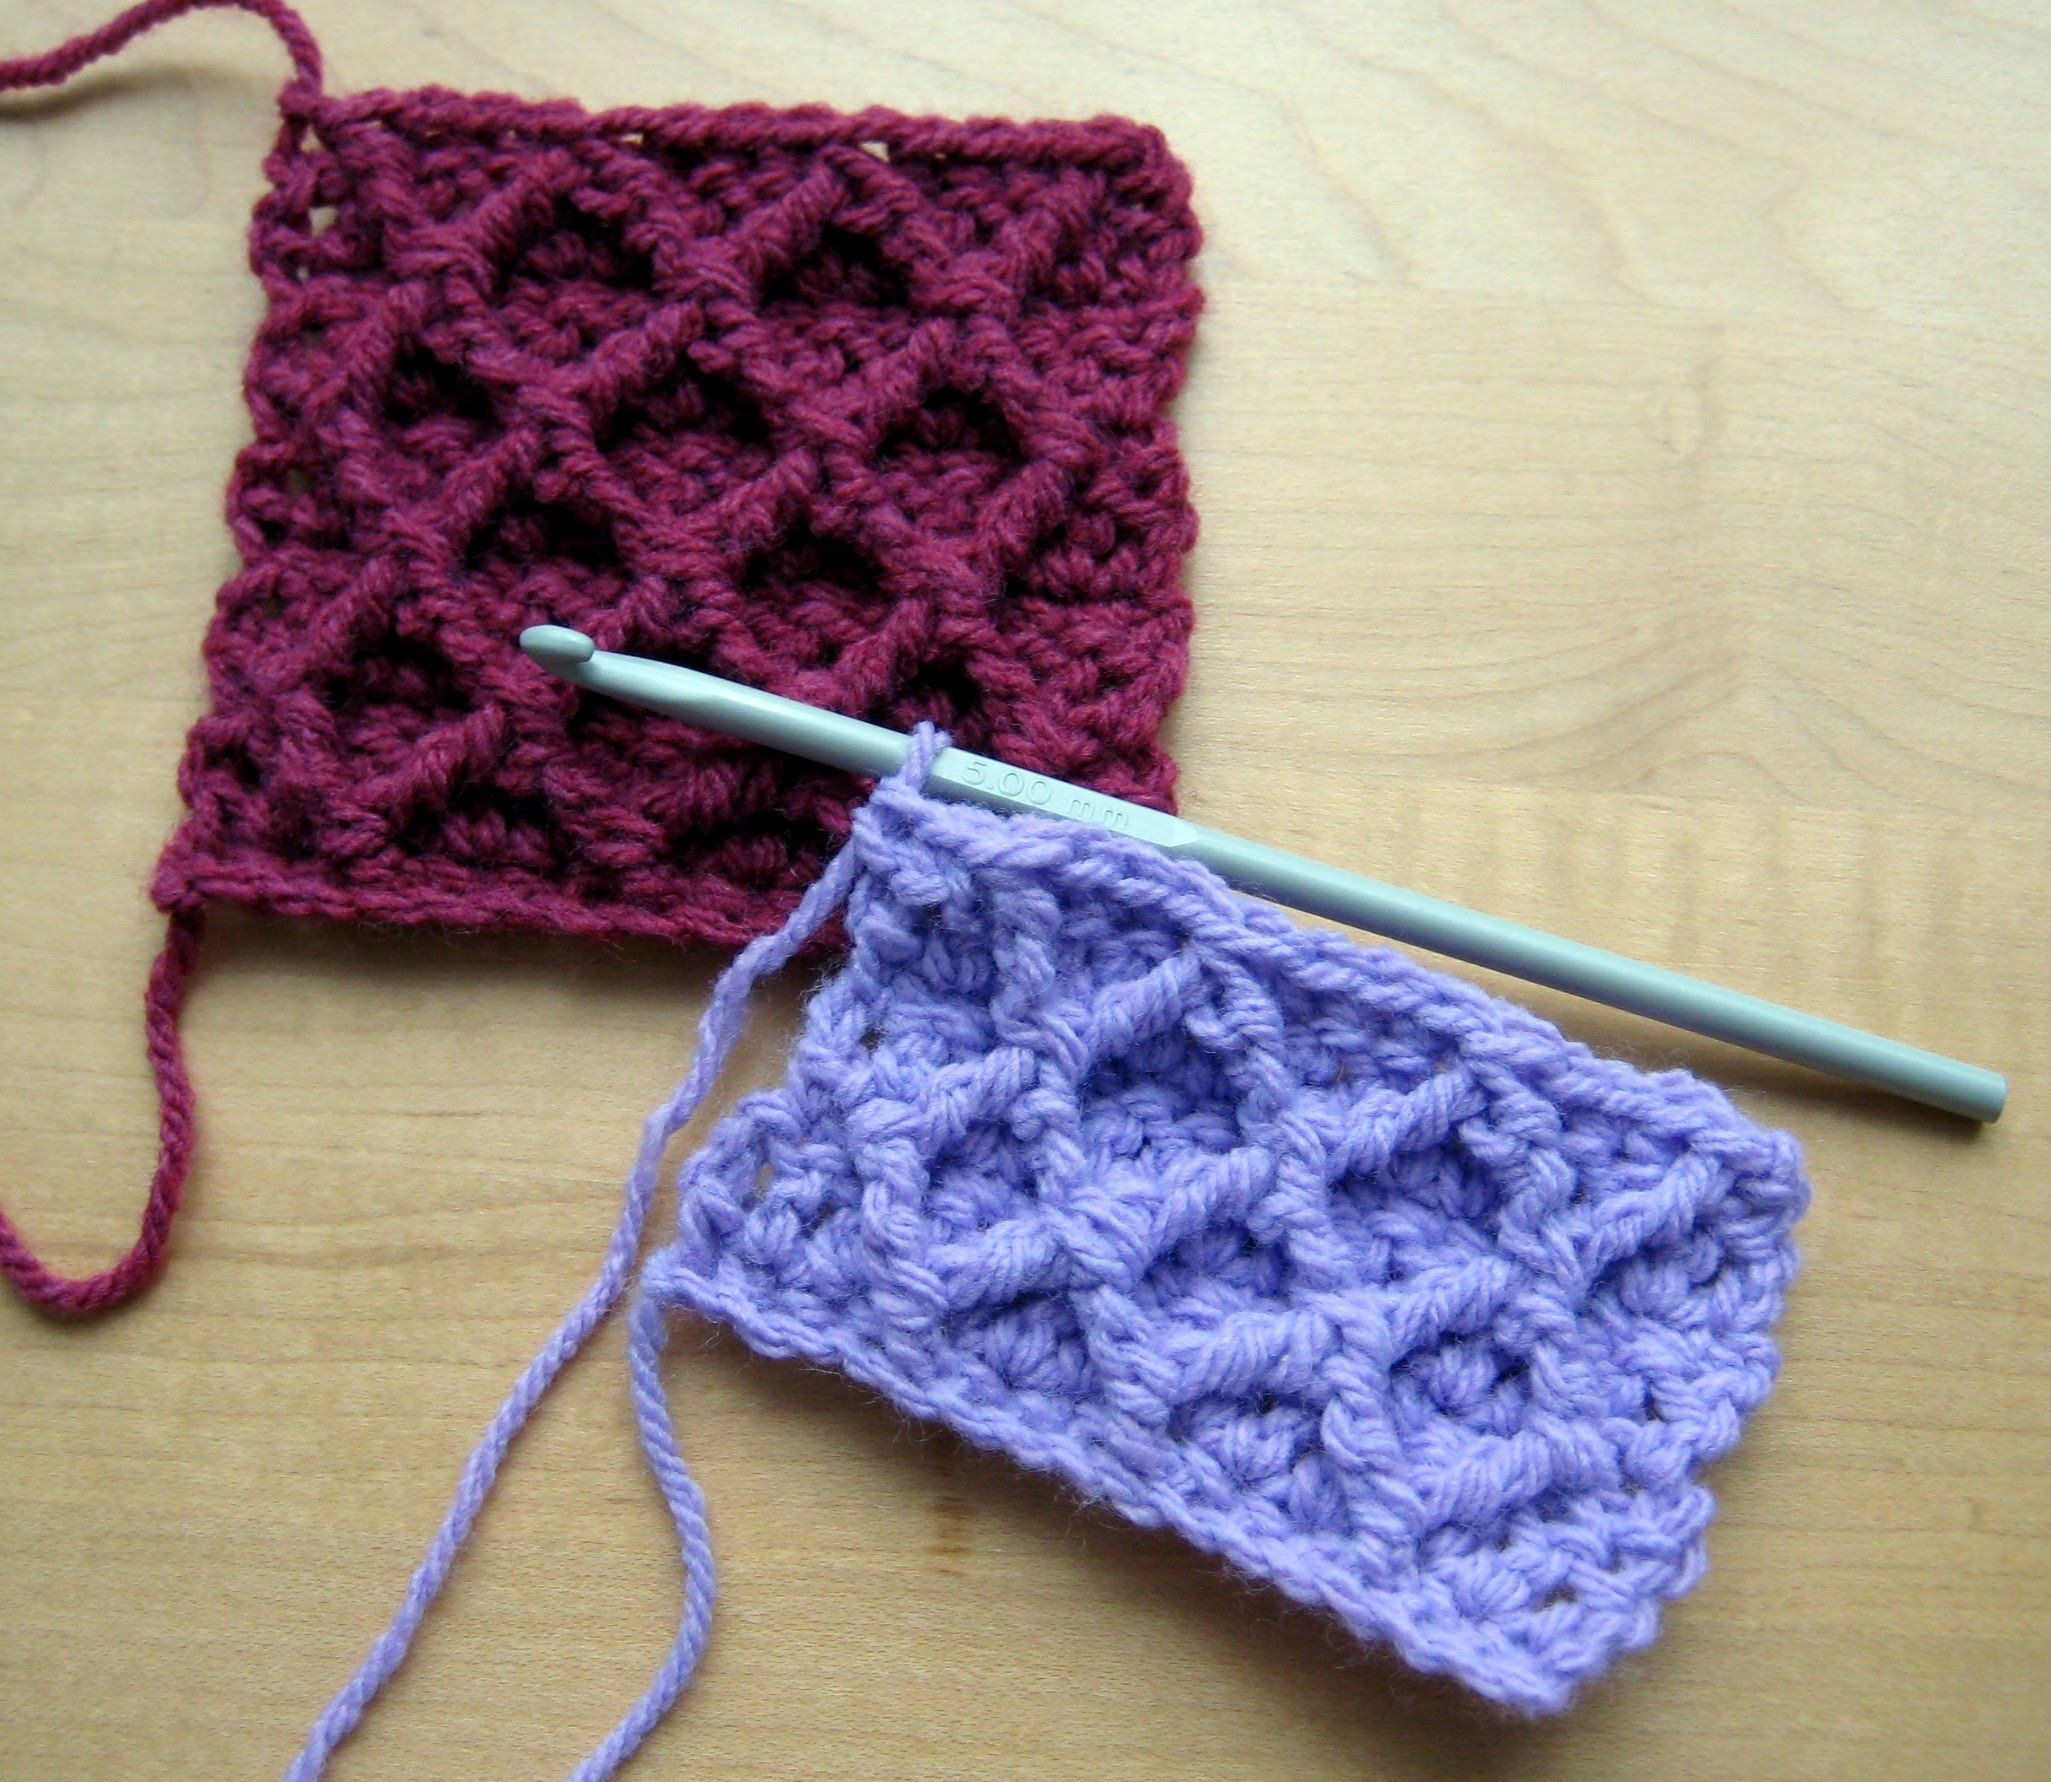 Written Crochet Patterns Beautiful A Tutorial On How to Crochet the Diamond Trellis Stitch Of Beautiful 42 Ideas Written Crochet Patterns